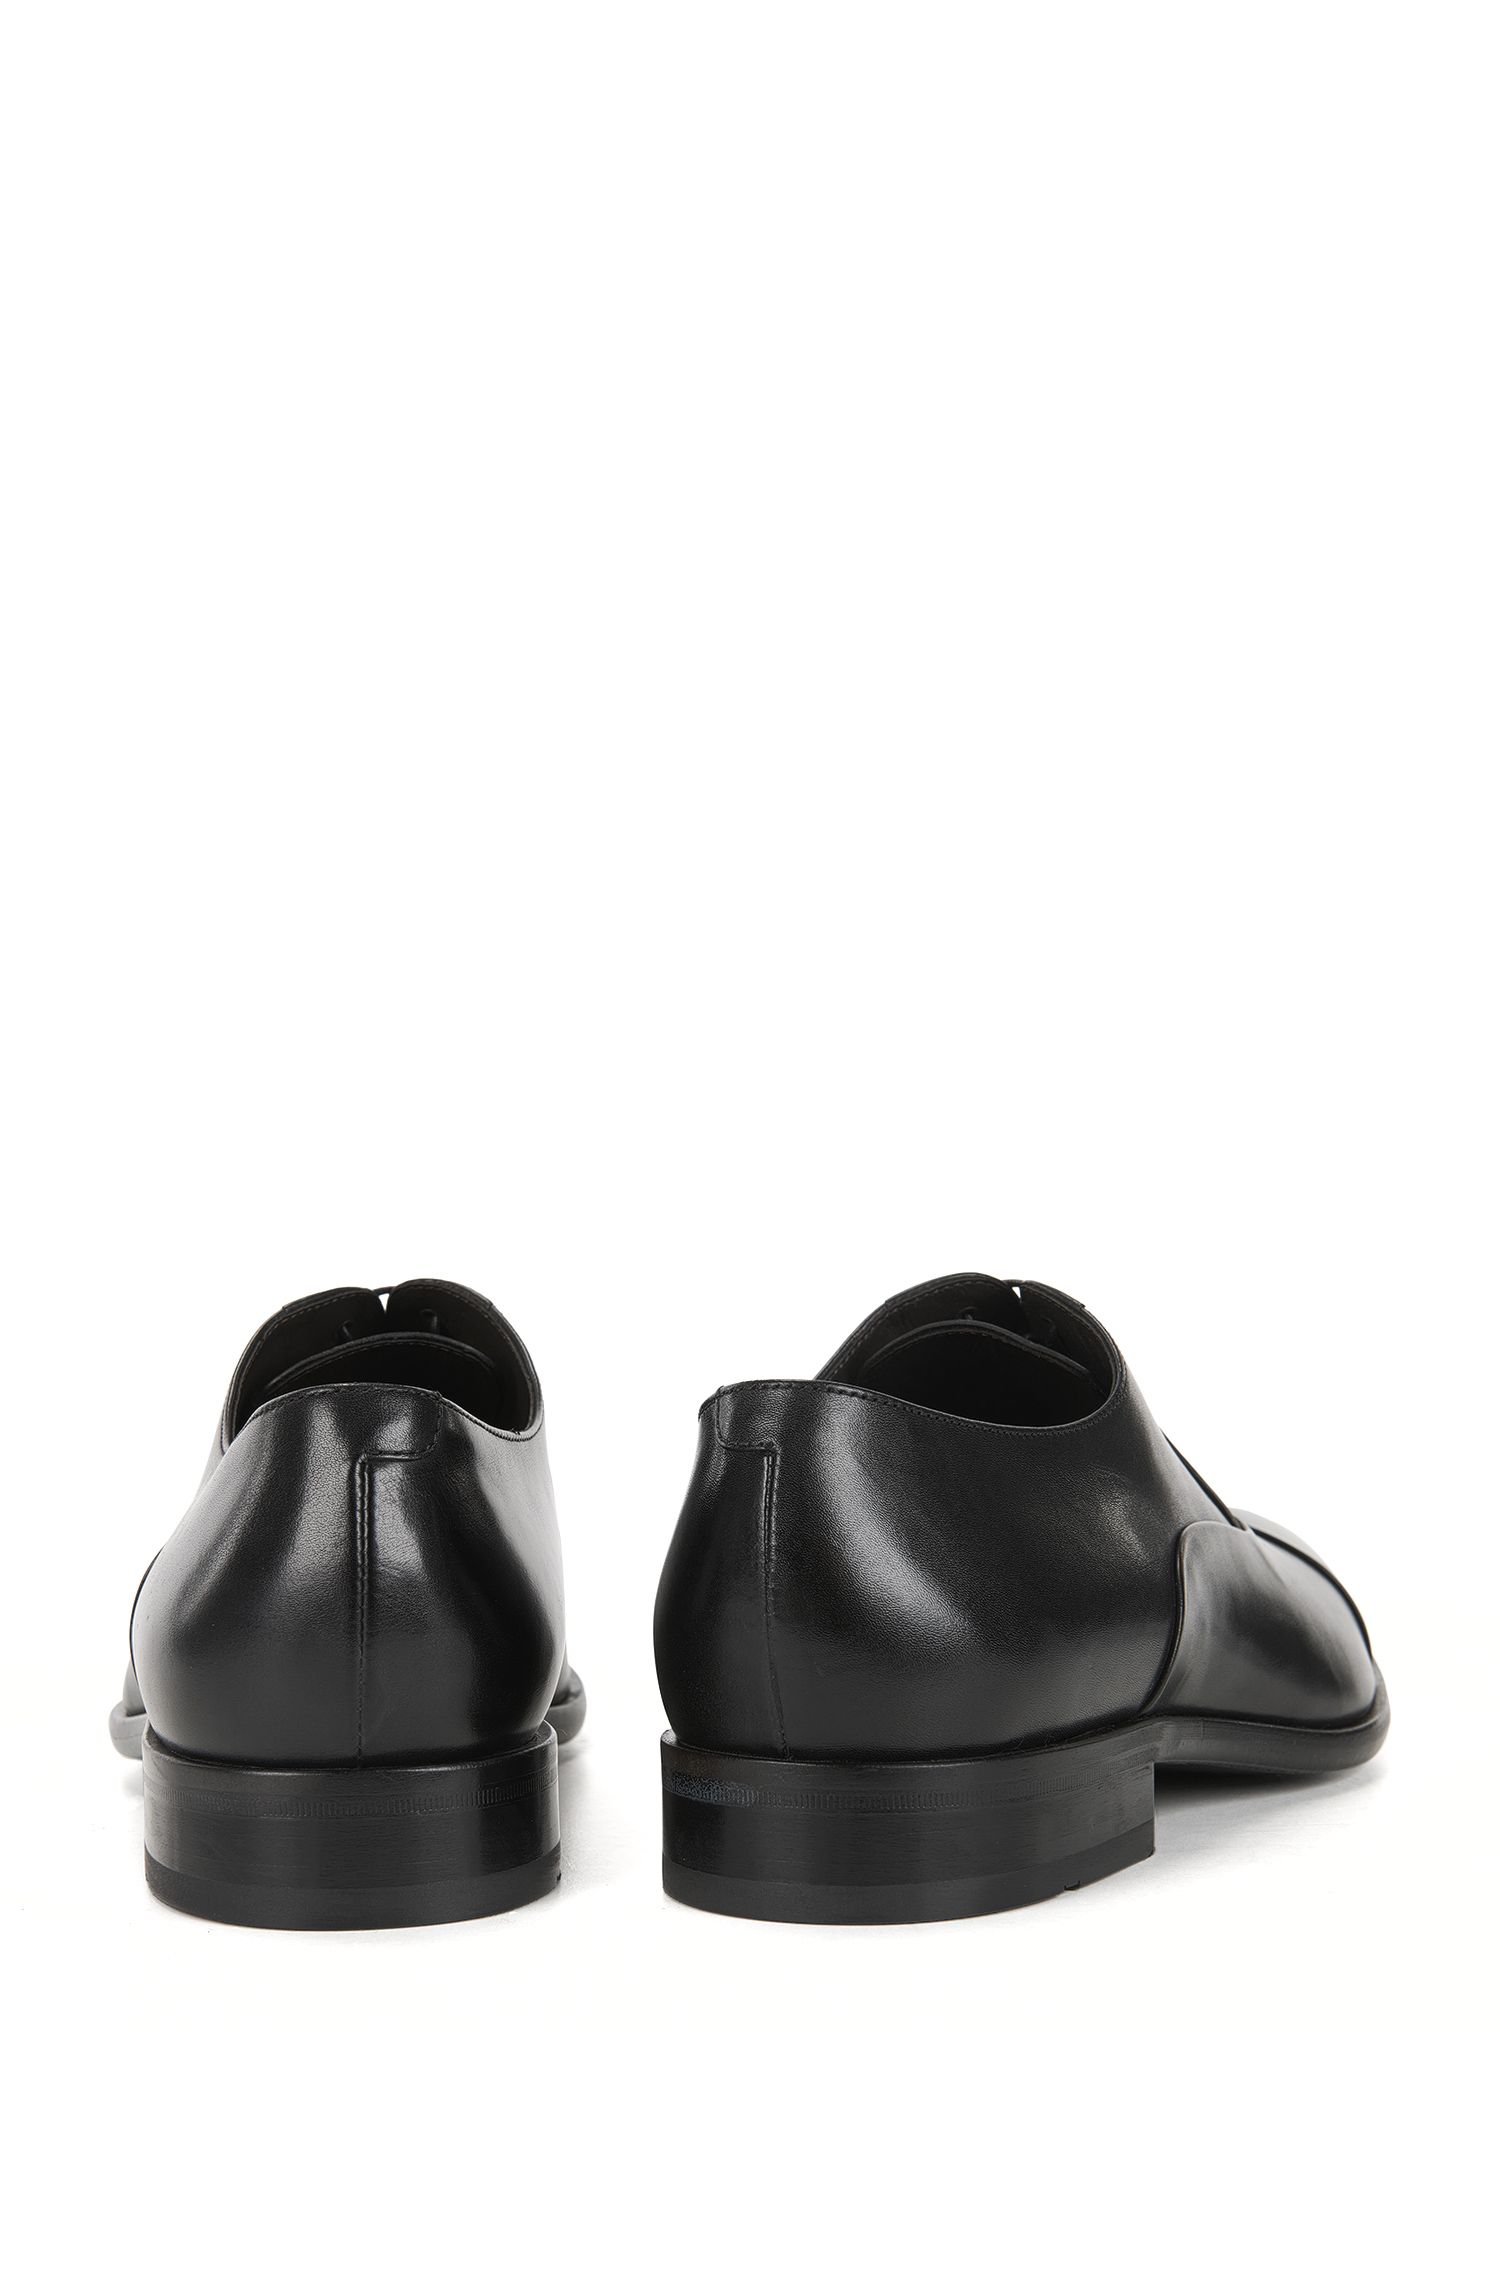 Lace-up Oxford shoes in polished leather, Black